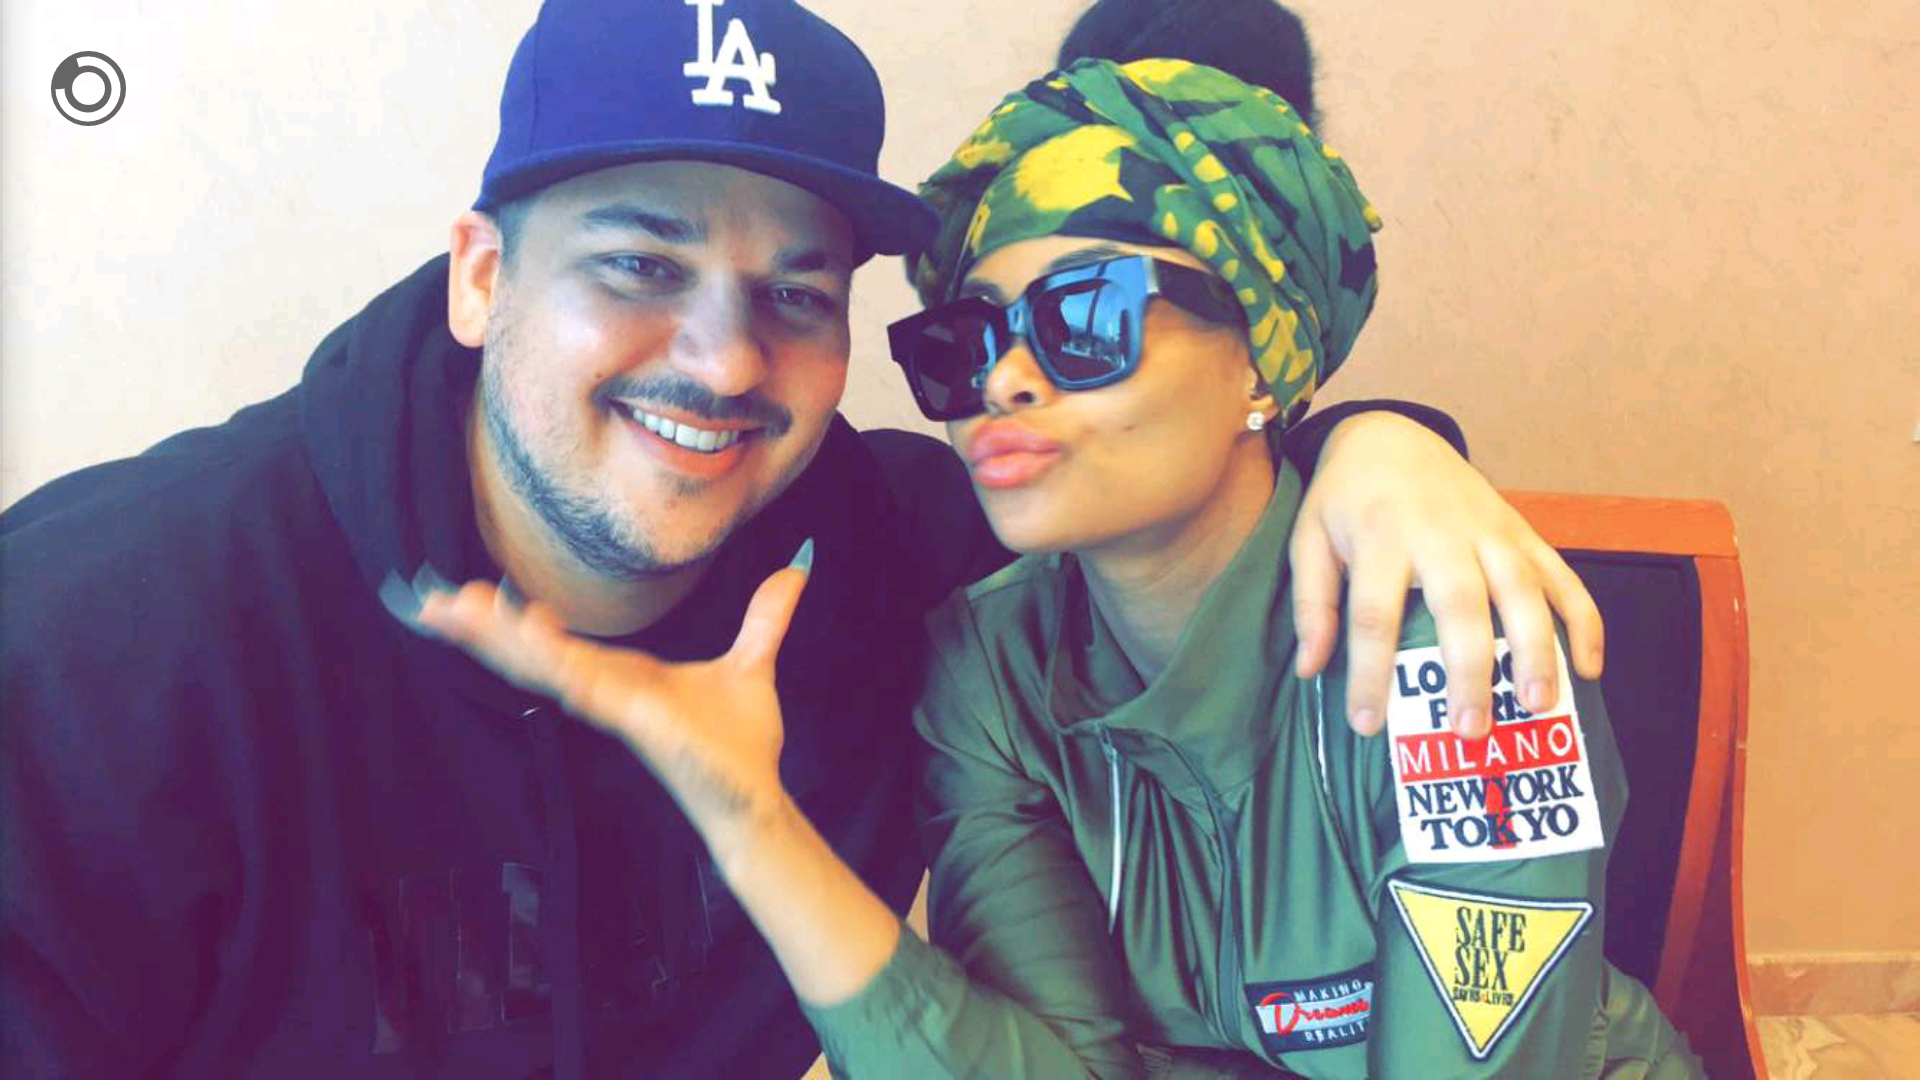 Blac Chyna jokes about having a baby with Rob Kardashian